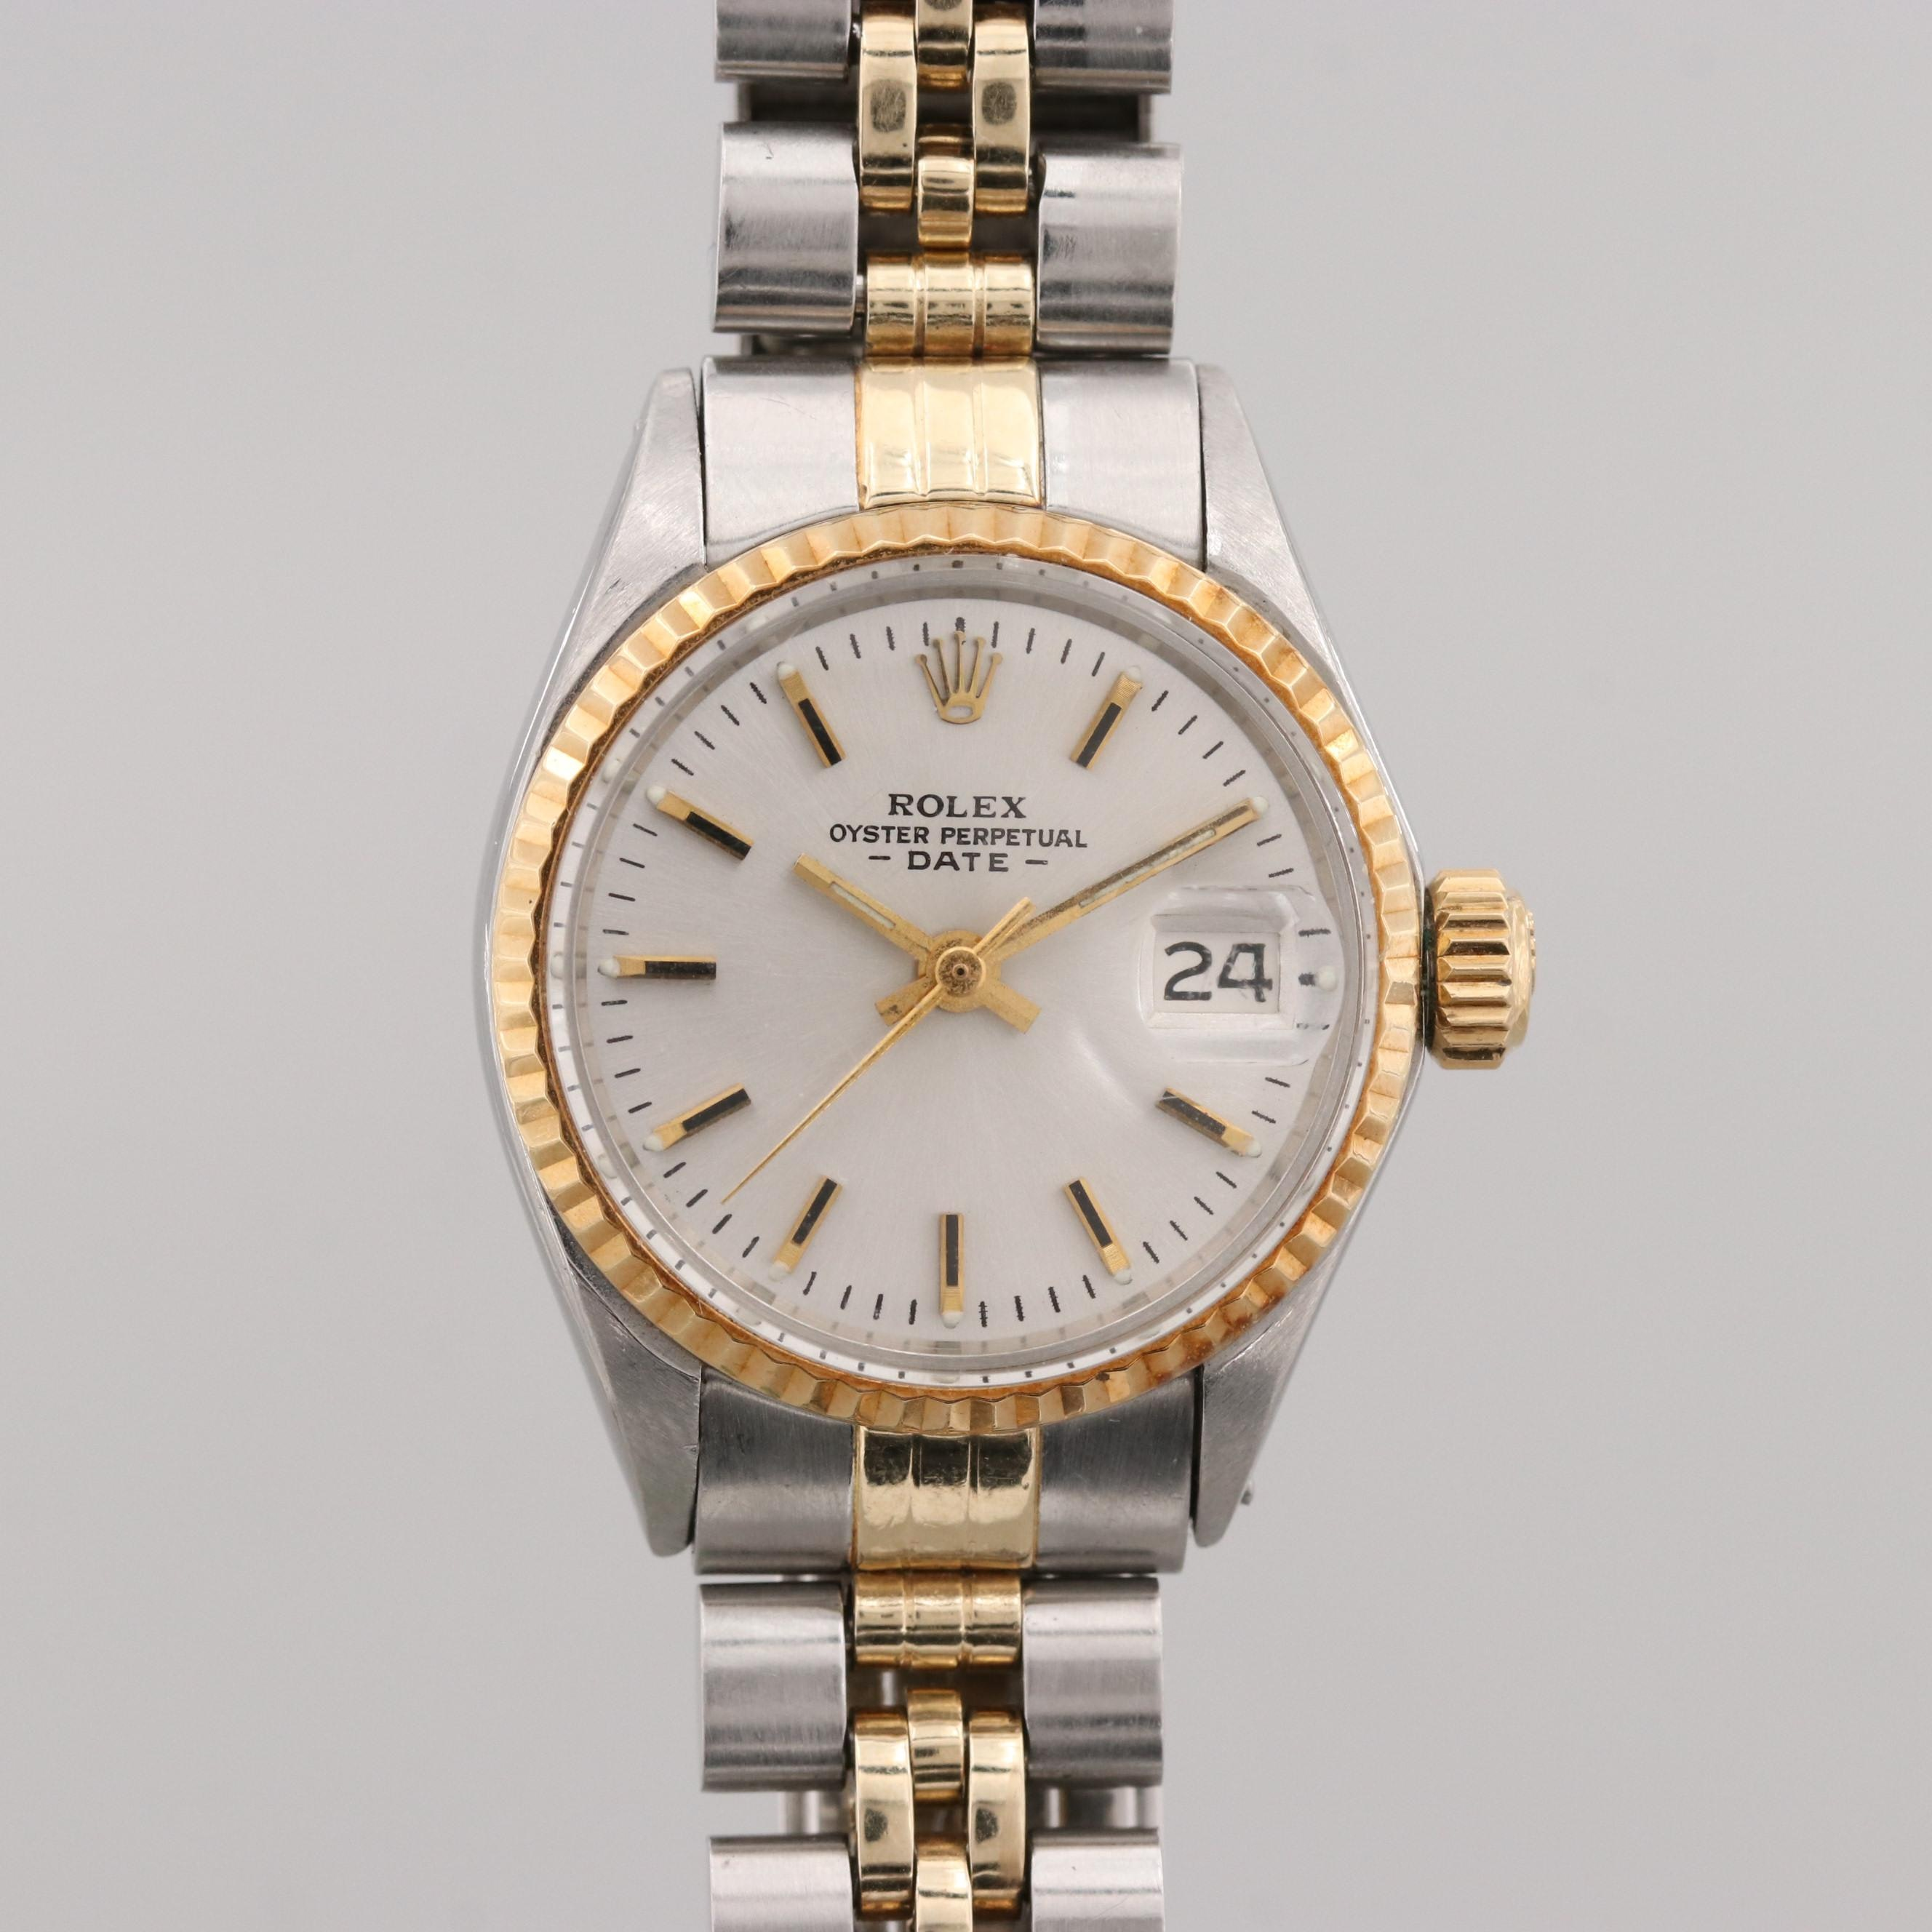 Rolex Oyster Perpetual Date Stainless Steel and Gold Automatic Wristwatch, 1971